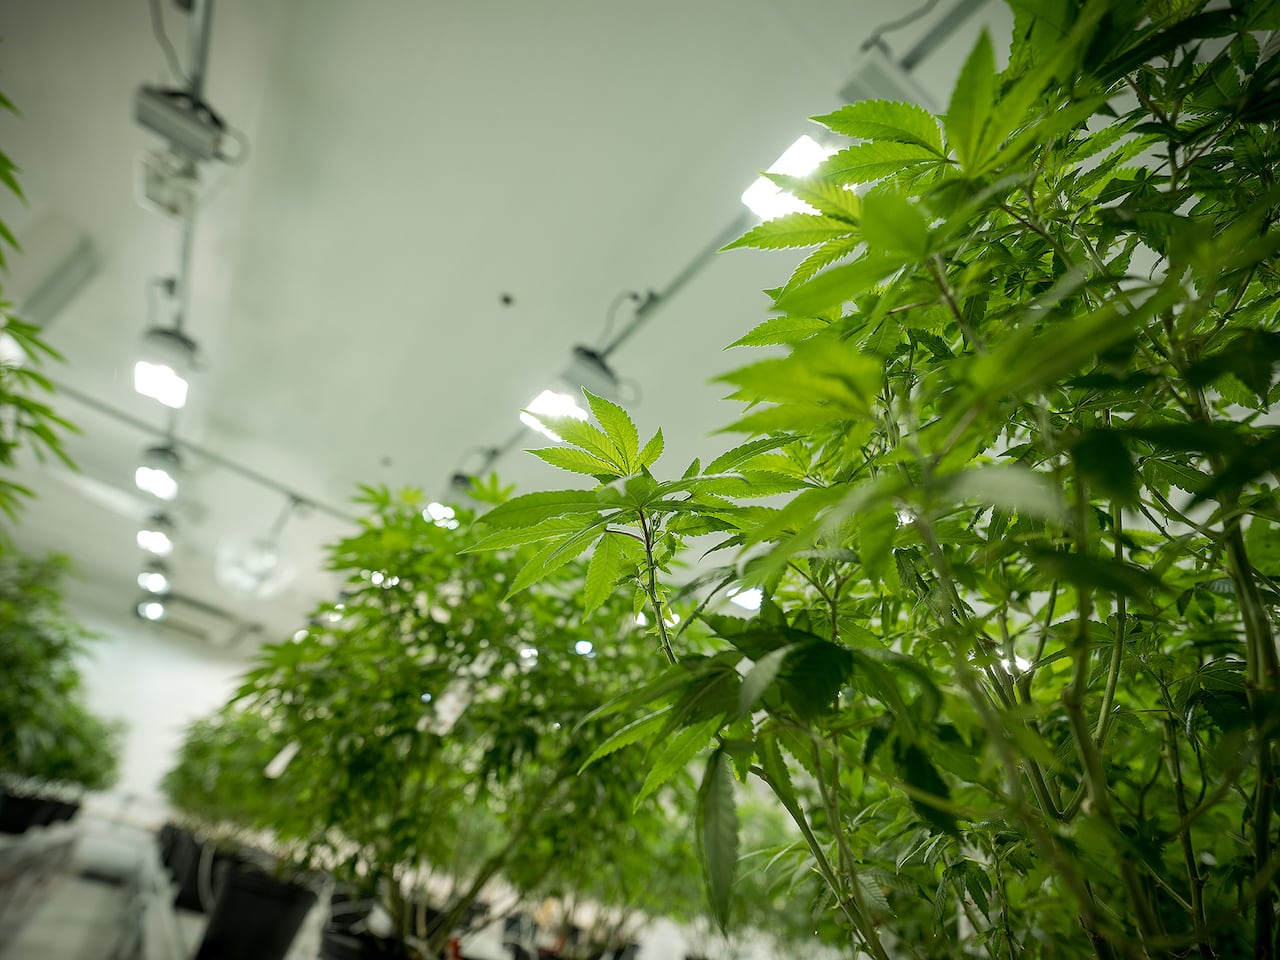 Growing pot? Here are some common mistakes to avoid | CBC News